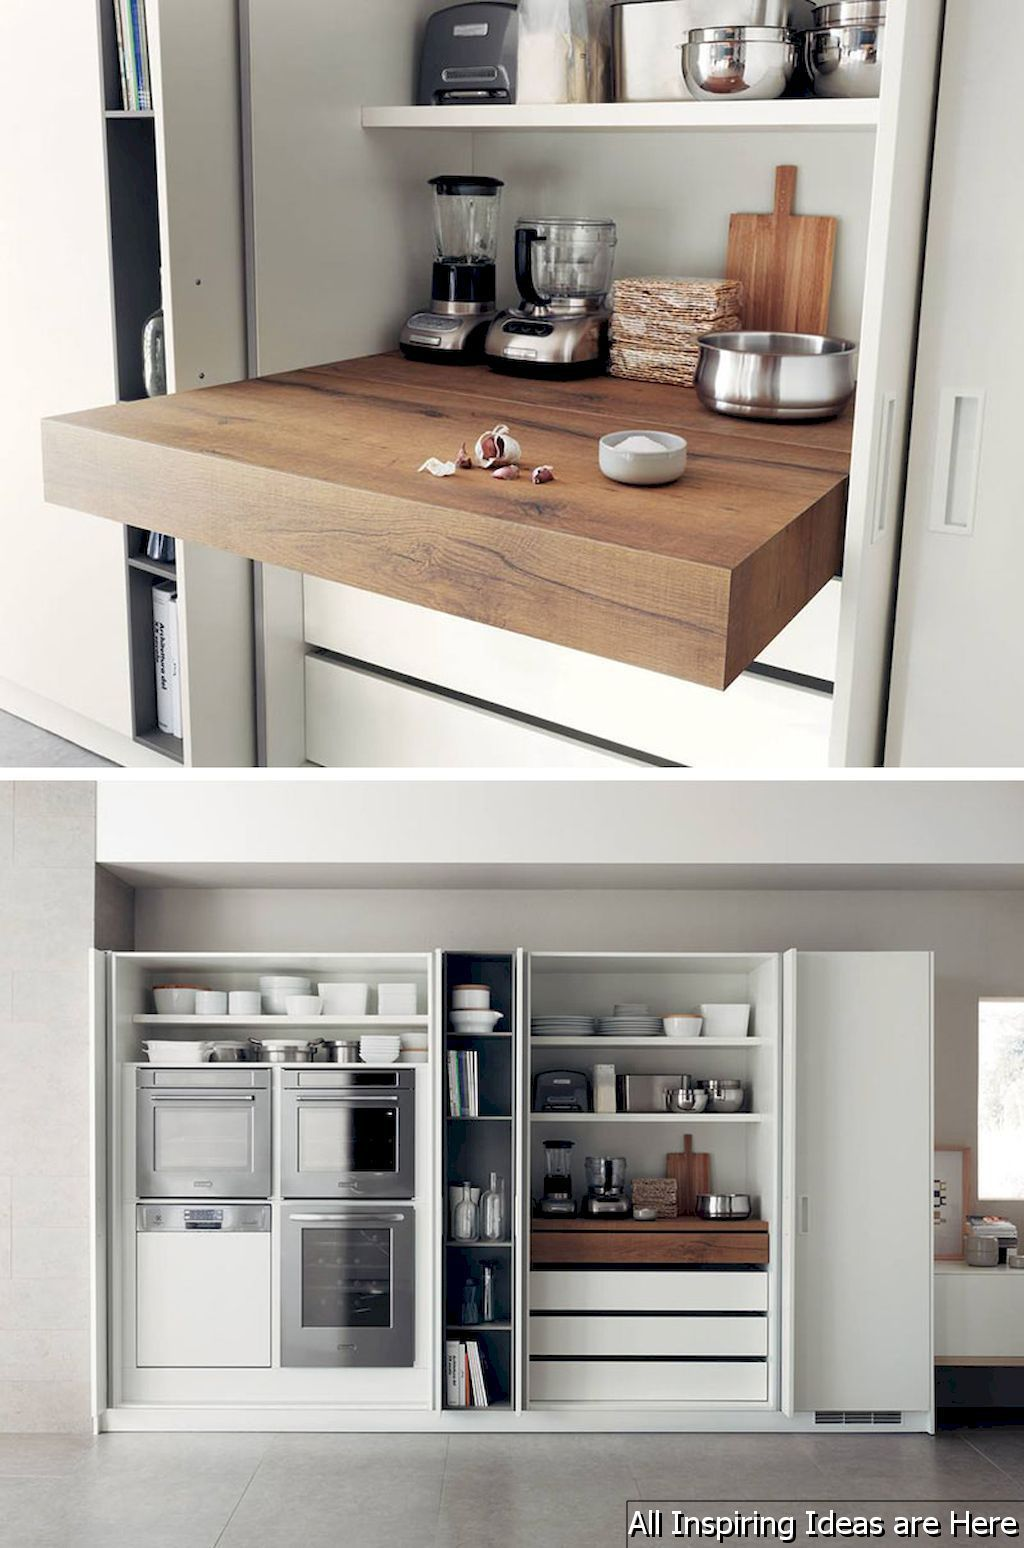 U küchendesign-ideen  best kitchen ideas and design kitchendesign  wohnideen in